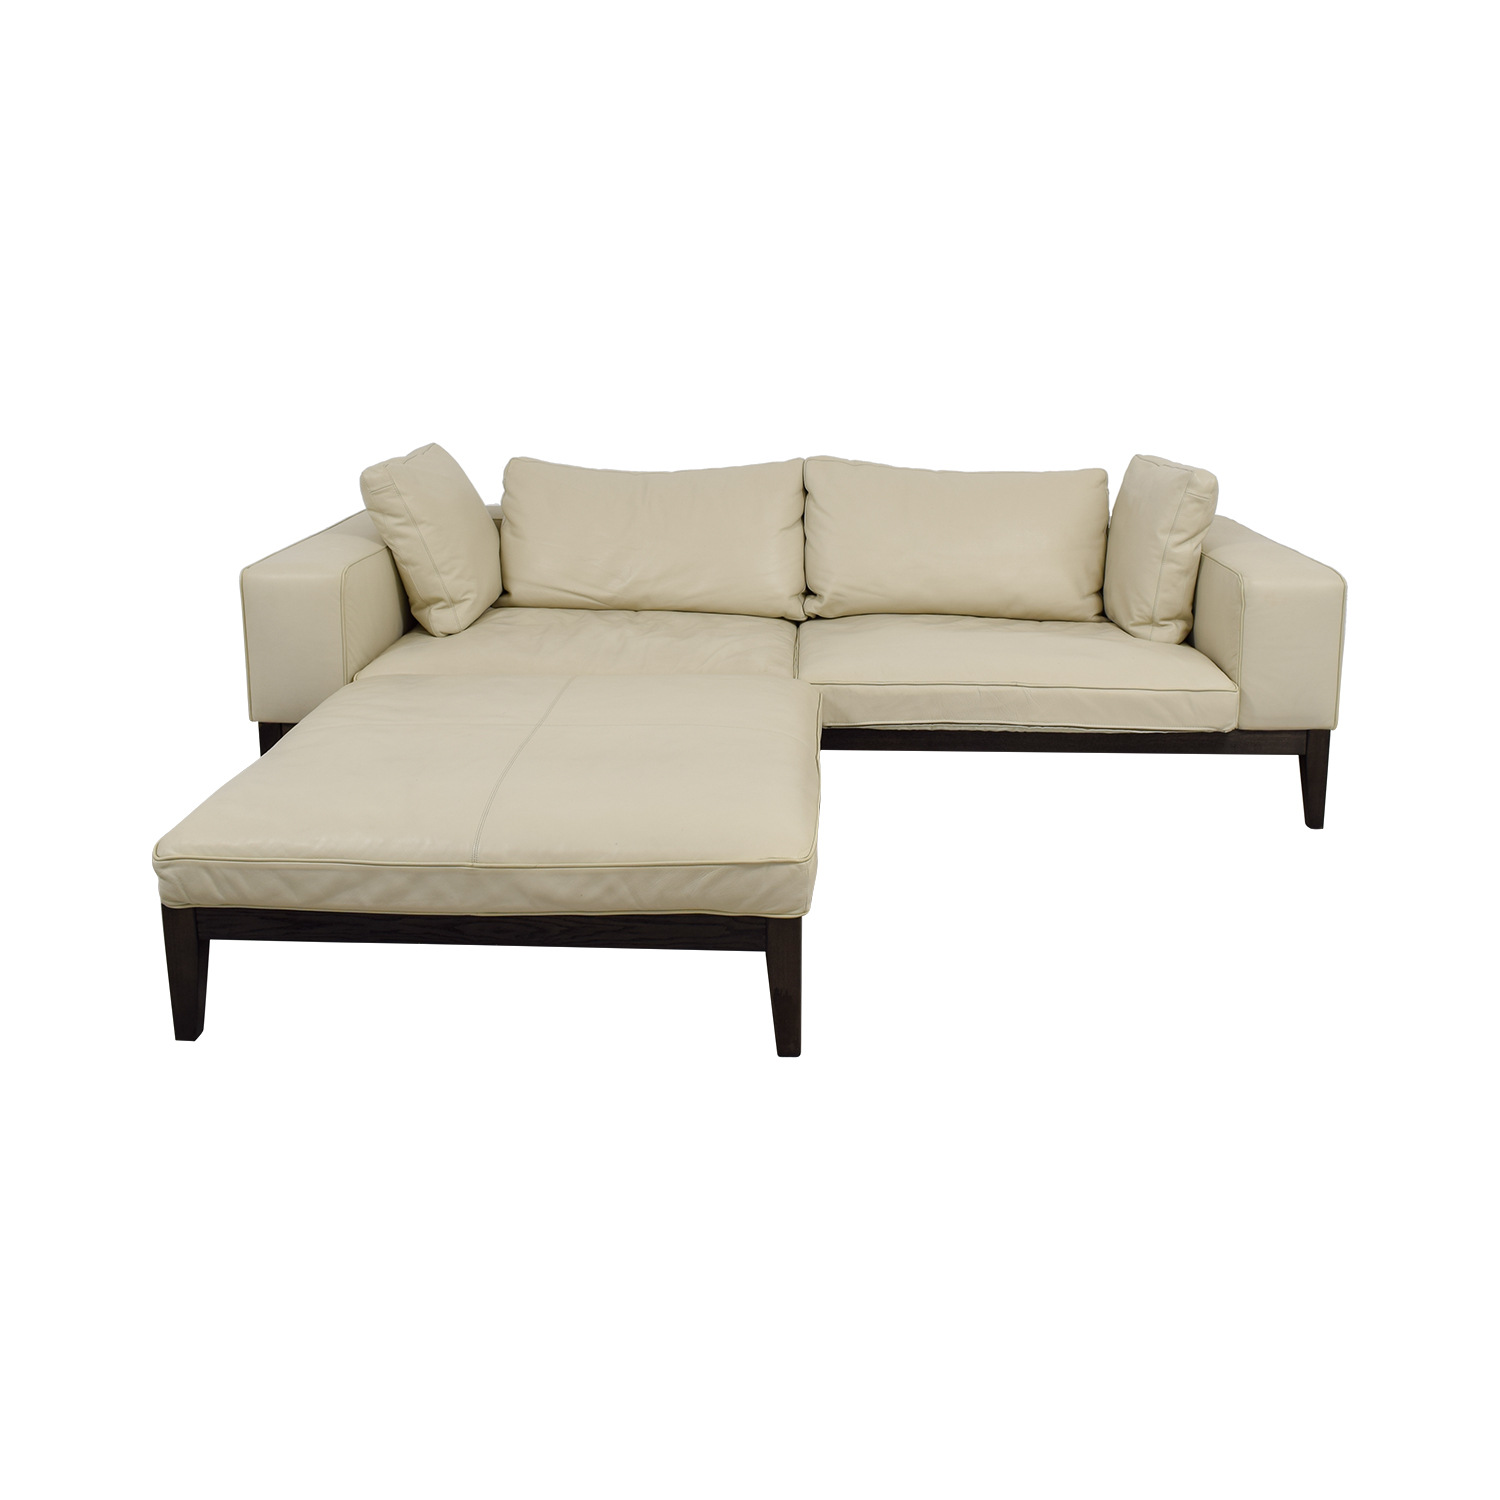 Tree Contemporary Italian Off White Leather Couch With Large Chaise Ottoman Nyc